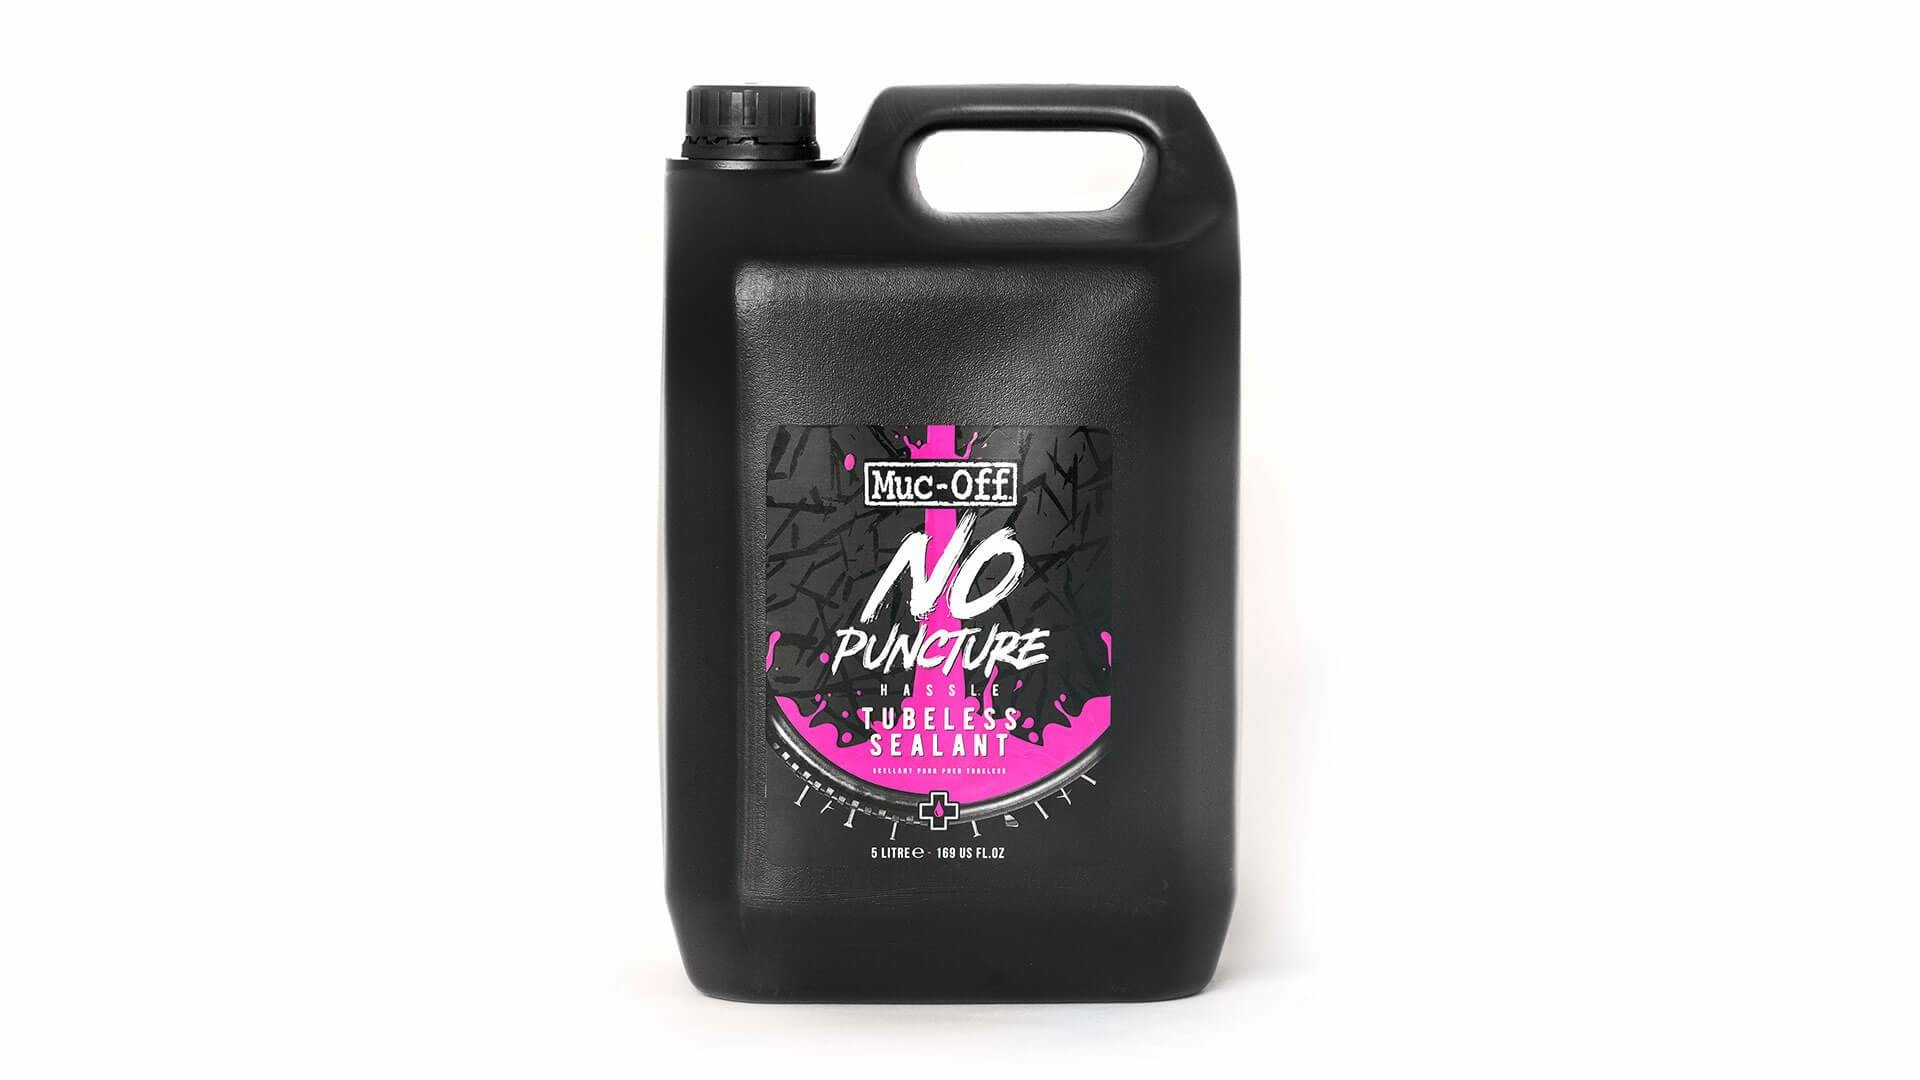 Muc-Off Muc-Off No Puncture Hassle Tubeless Sealant (5L)